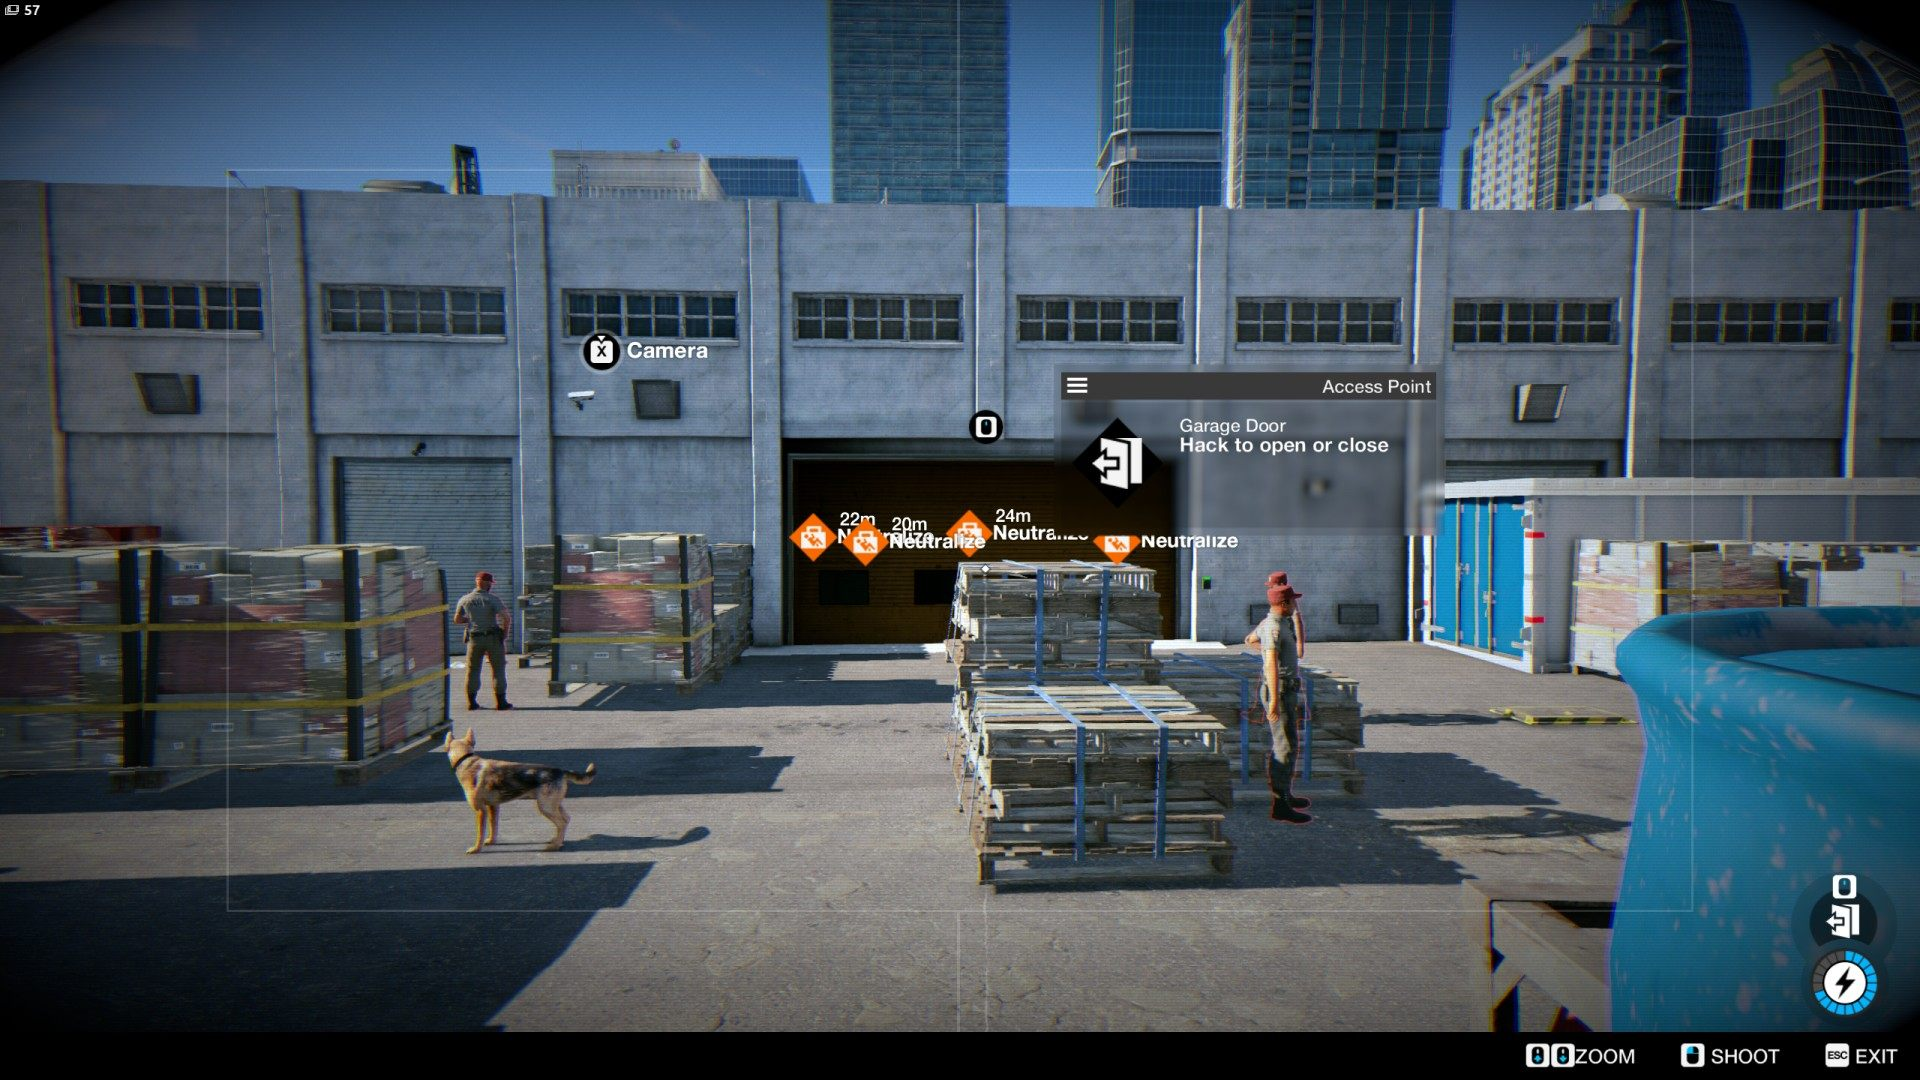 academy garage doorRodentia Academy Watch Dogs 2 Operation  Watch Dogs 2 Game Guide